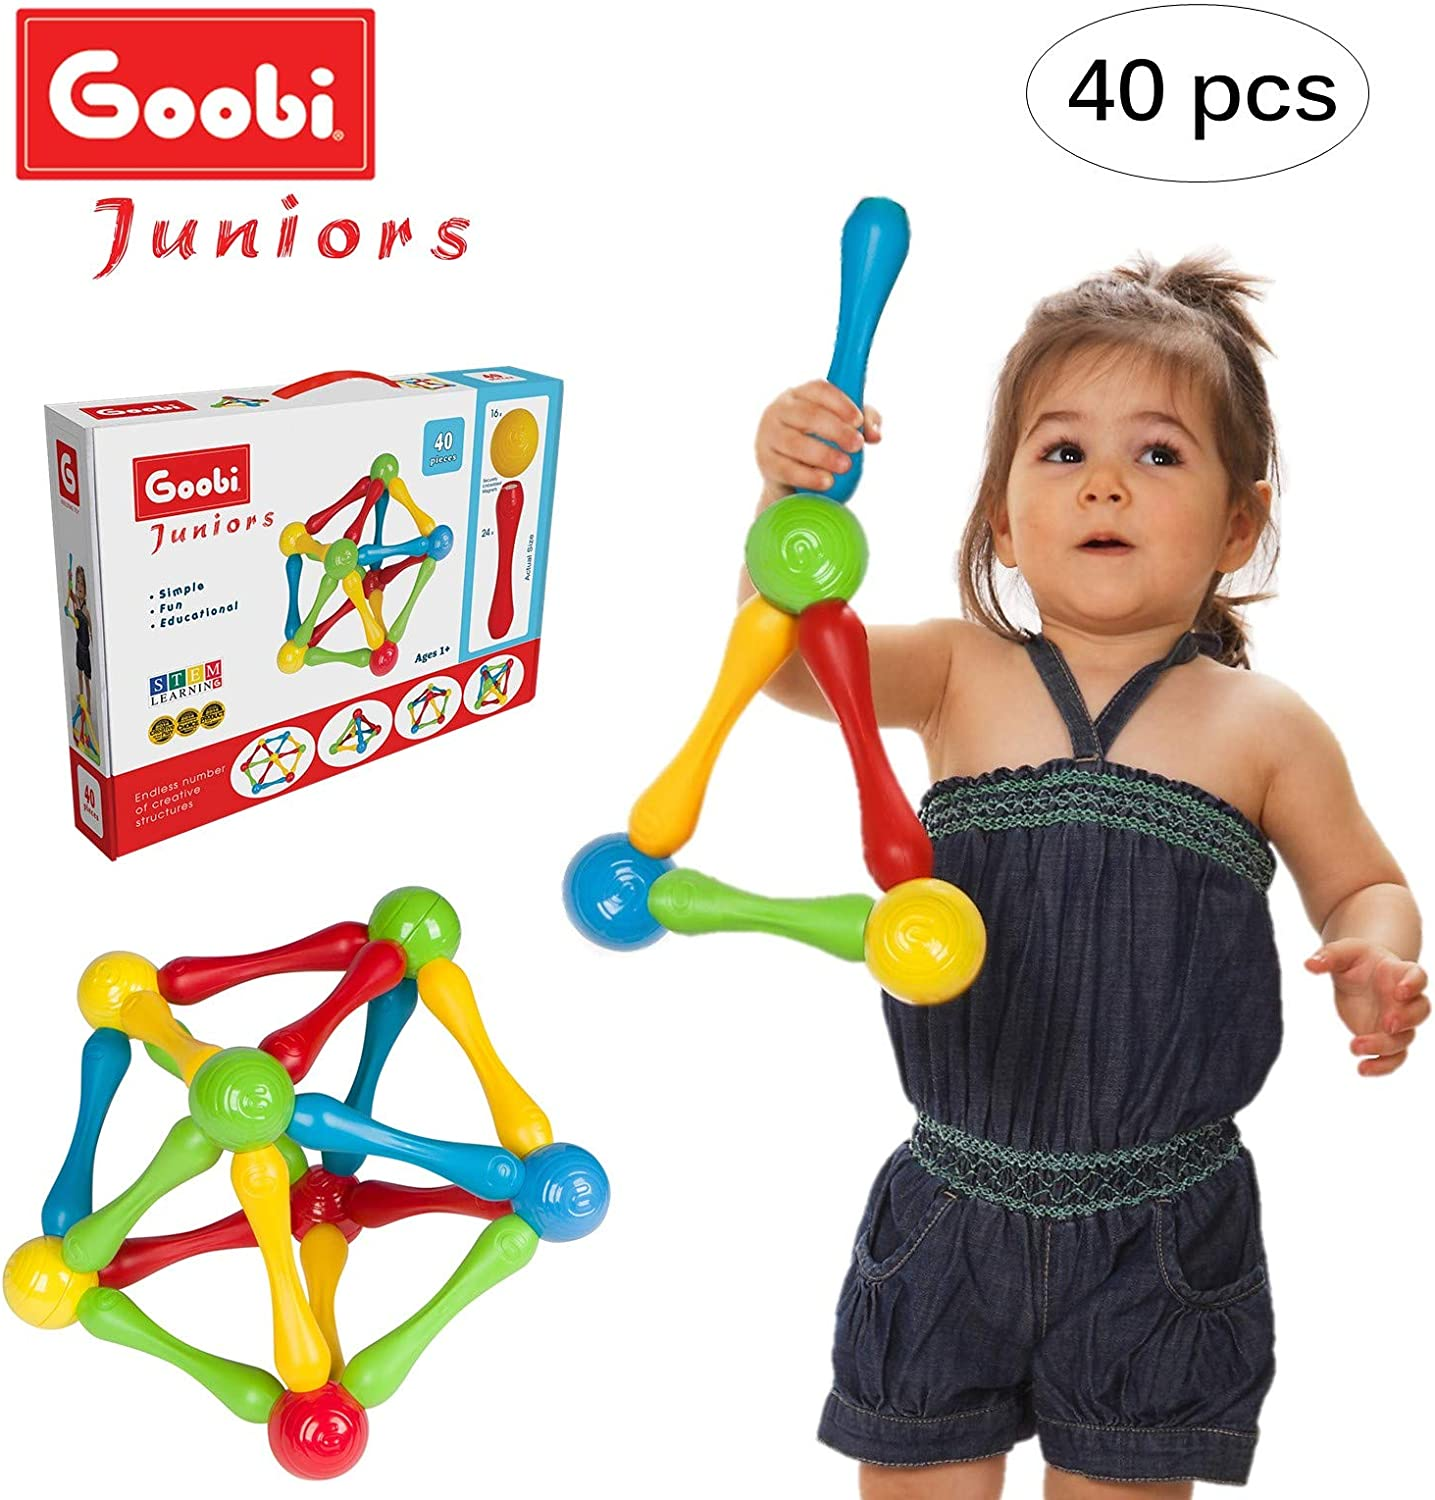 Top 7 Best Stem Toys For Toddlers (2020 Reviews) 3